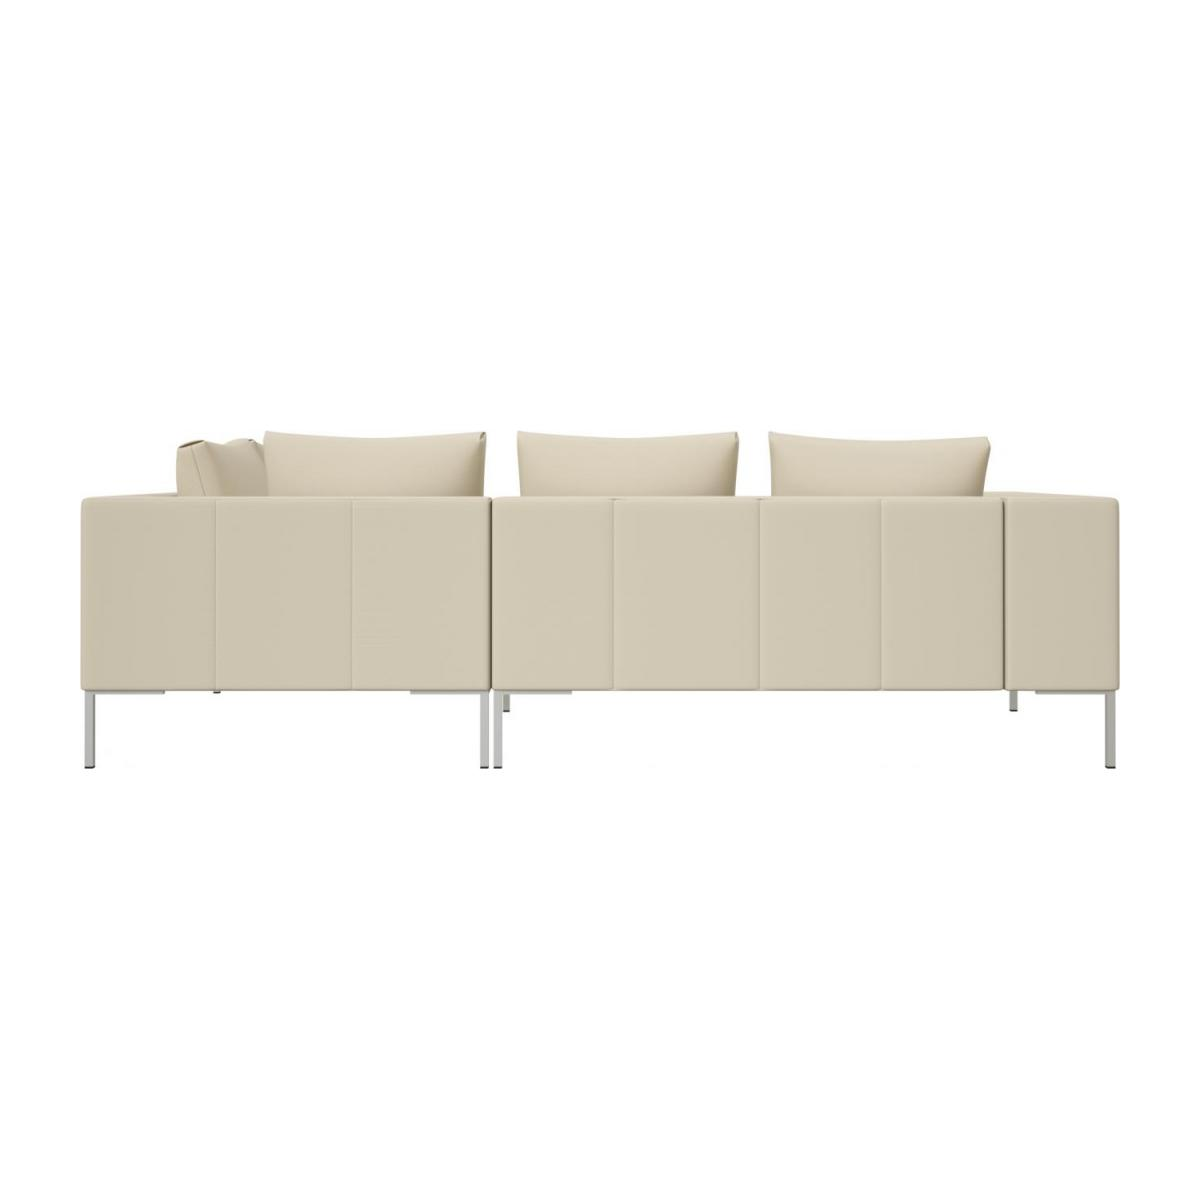 2 seater sofa with chaise longue on the right in Savoy semi-aniline leather, off white  n°3